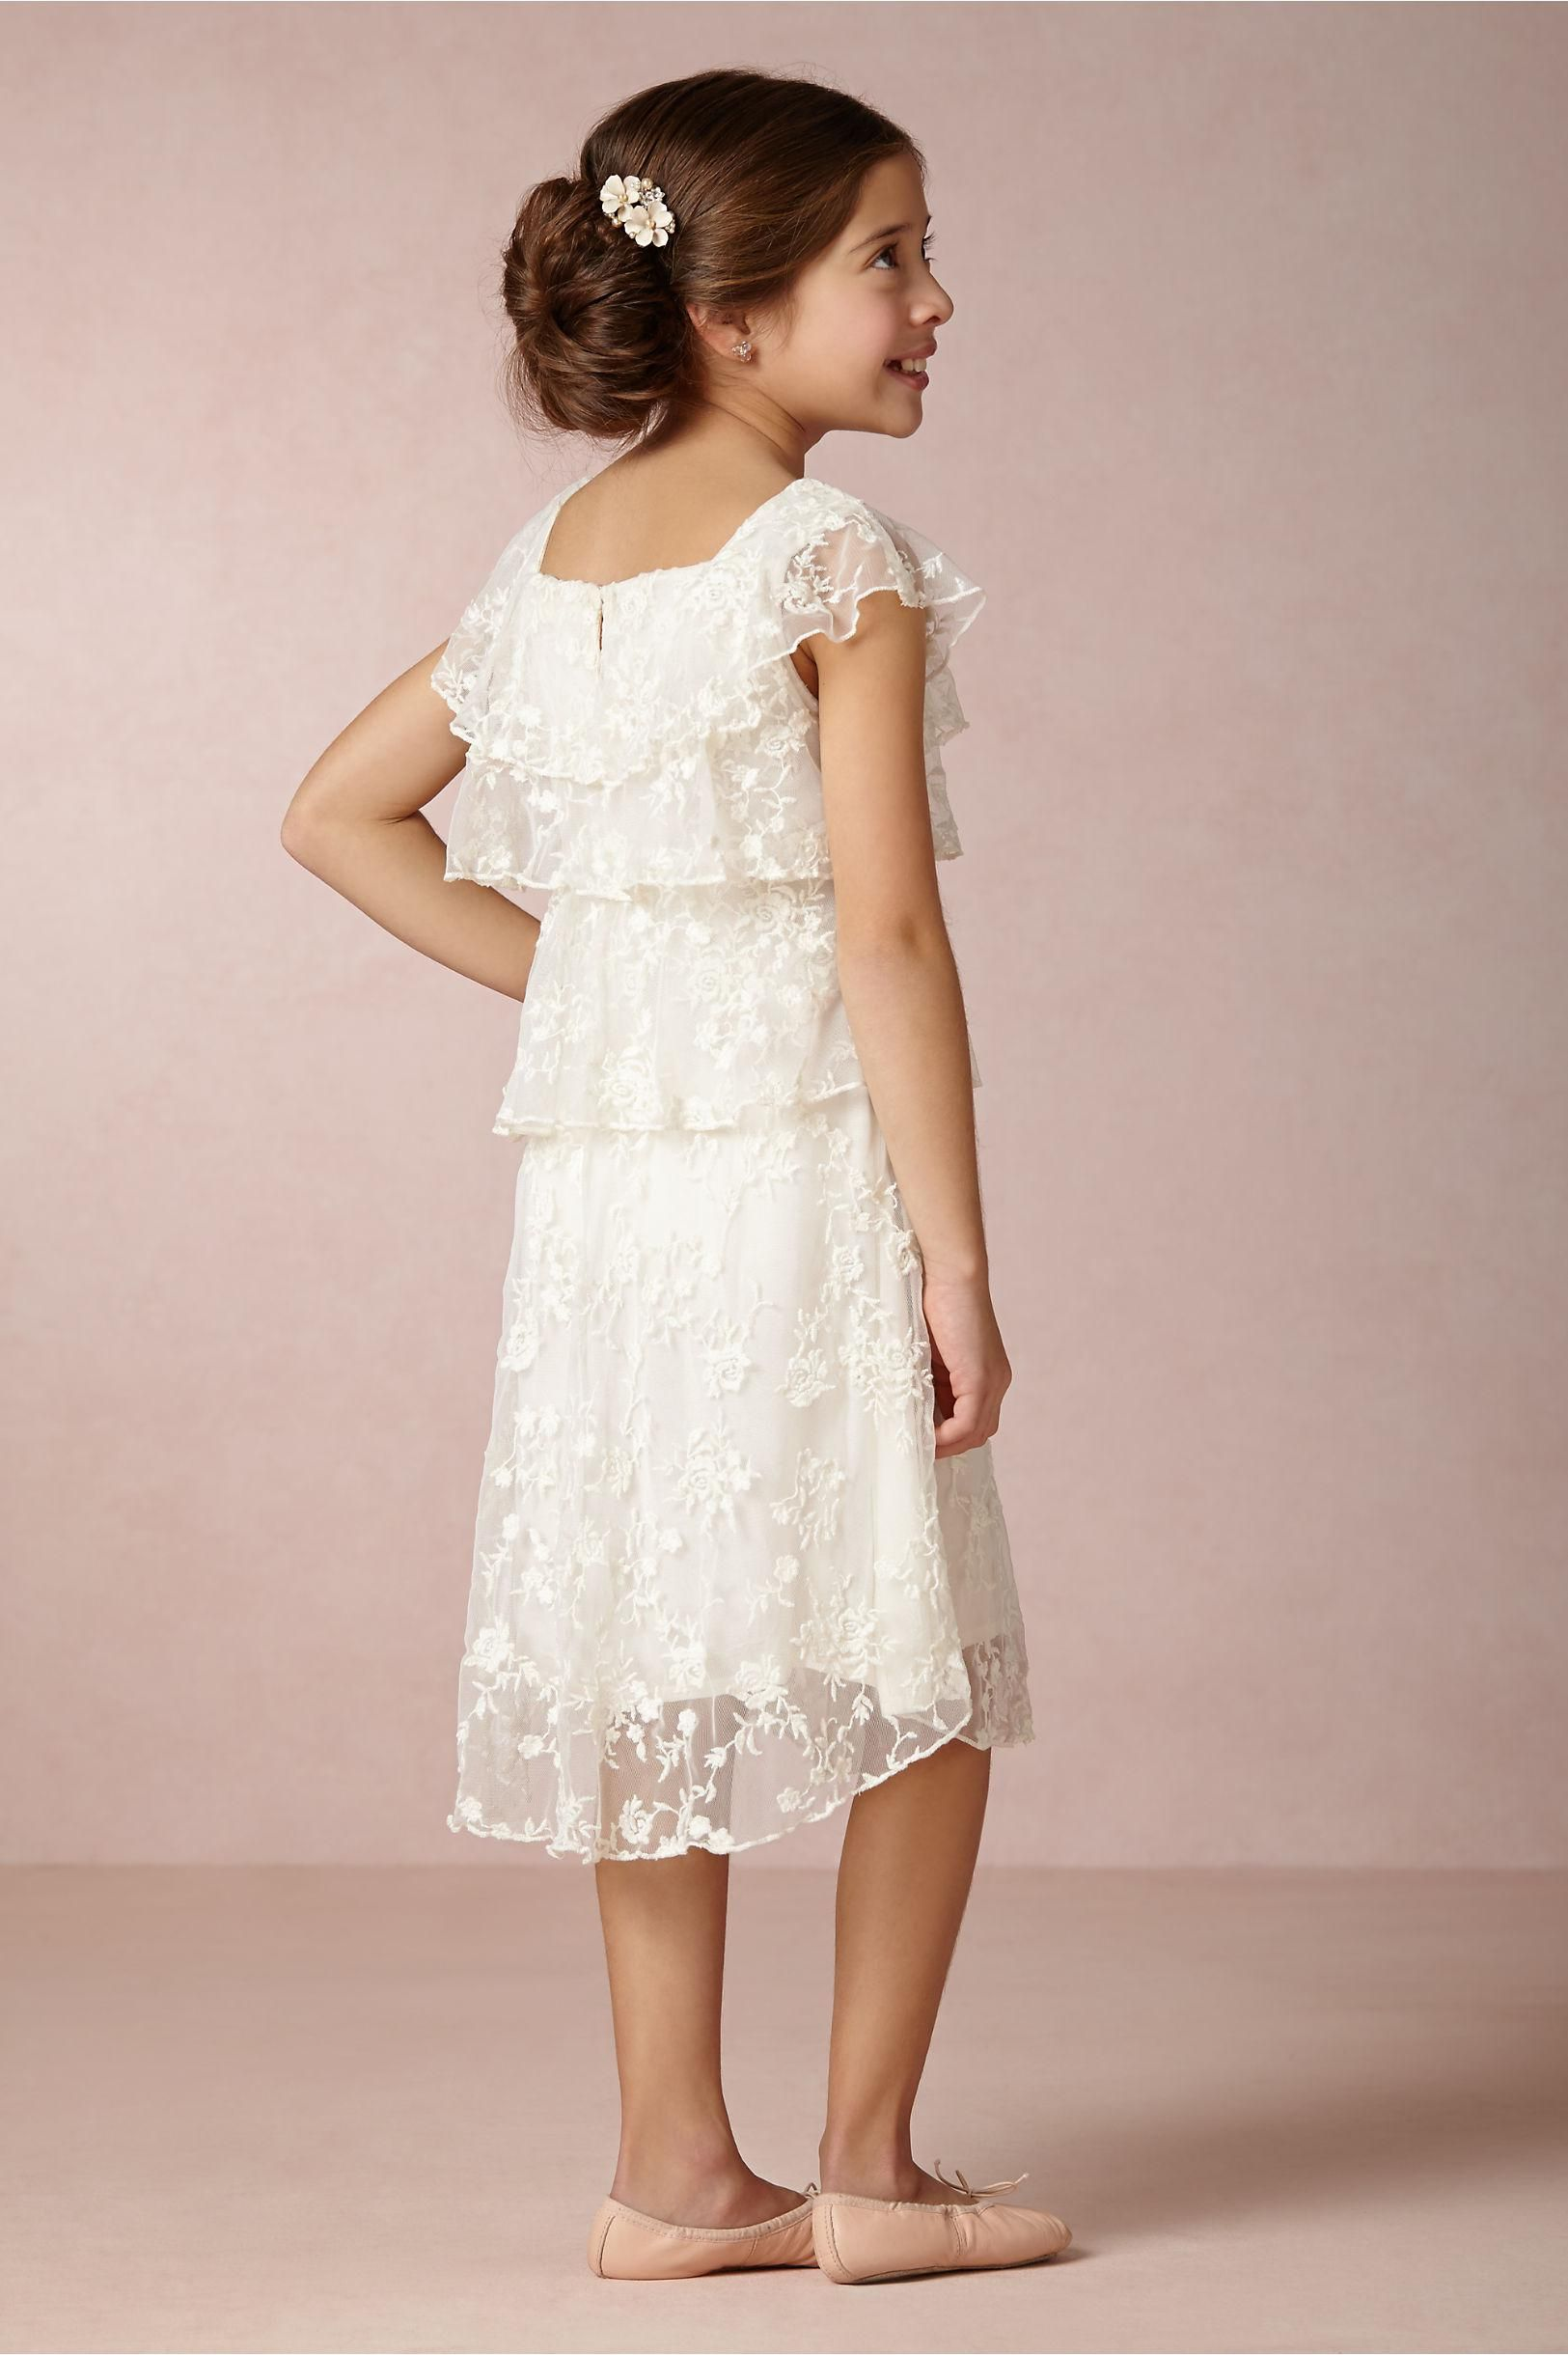 Cheap flower girl dresses under 20 dreamy frock features embroidered cheap flower girl dresses under 20 dreamy frock features embroidered lace blooms tulle tiers short sleeves izmirmasajfo Images